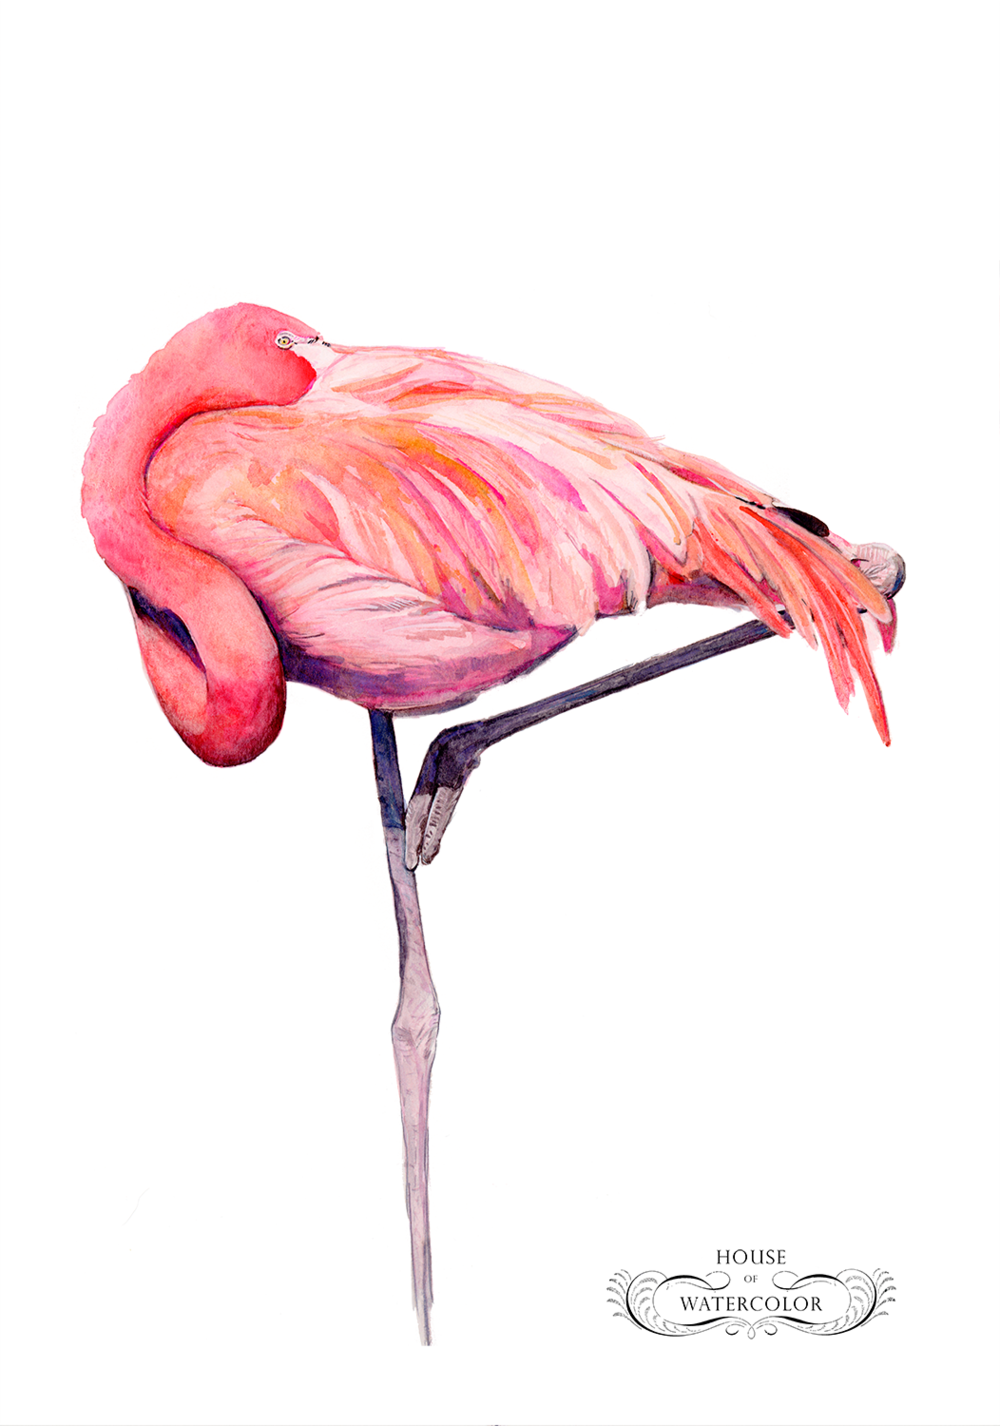 FEATURED GALLERY — House of Watercolor